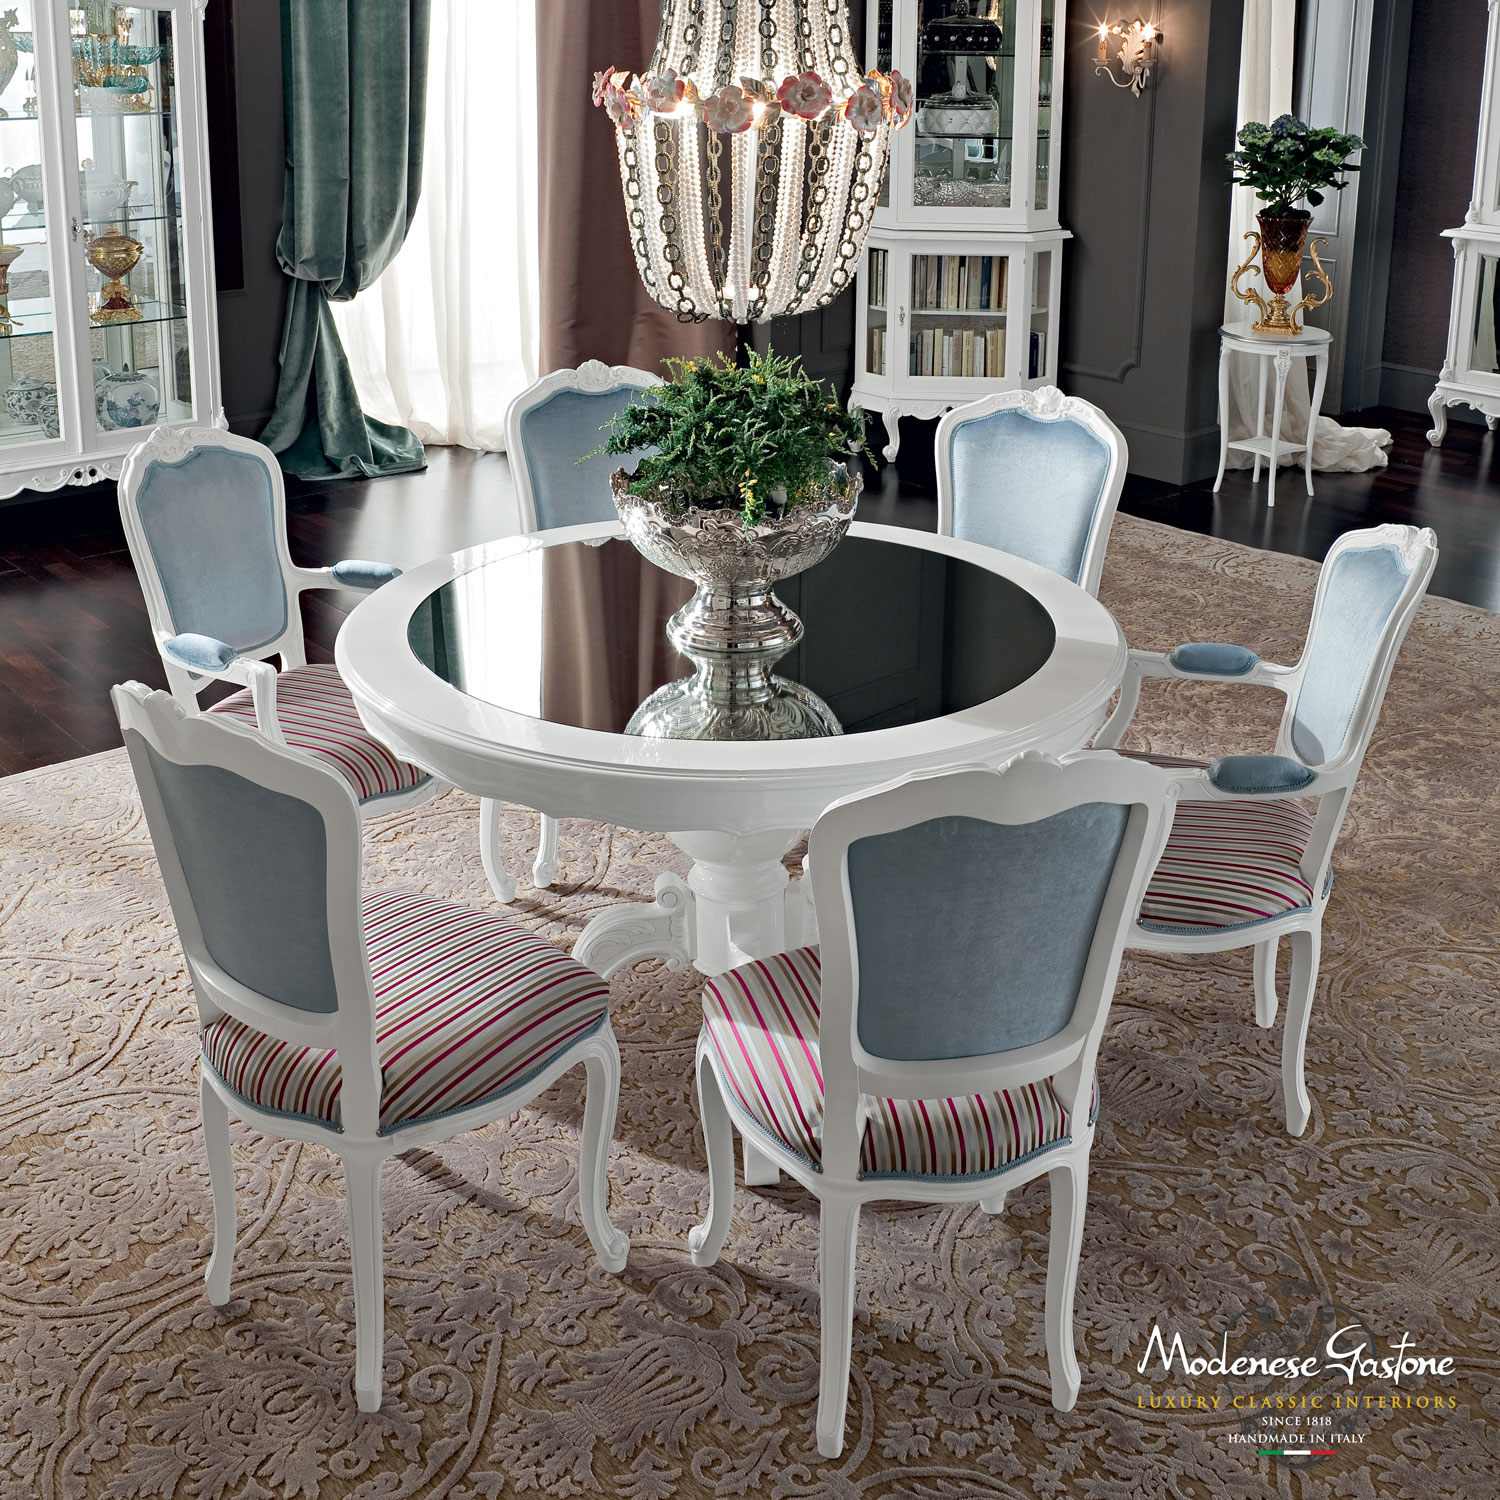 Fashionable-dining-room-round-table-with-mirror-top-Casanova-collection-Modenese-Gastone